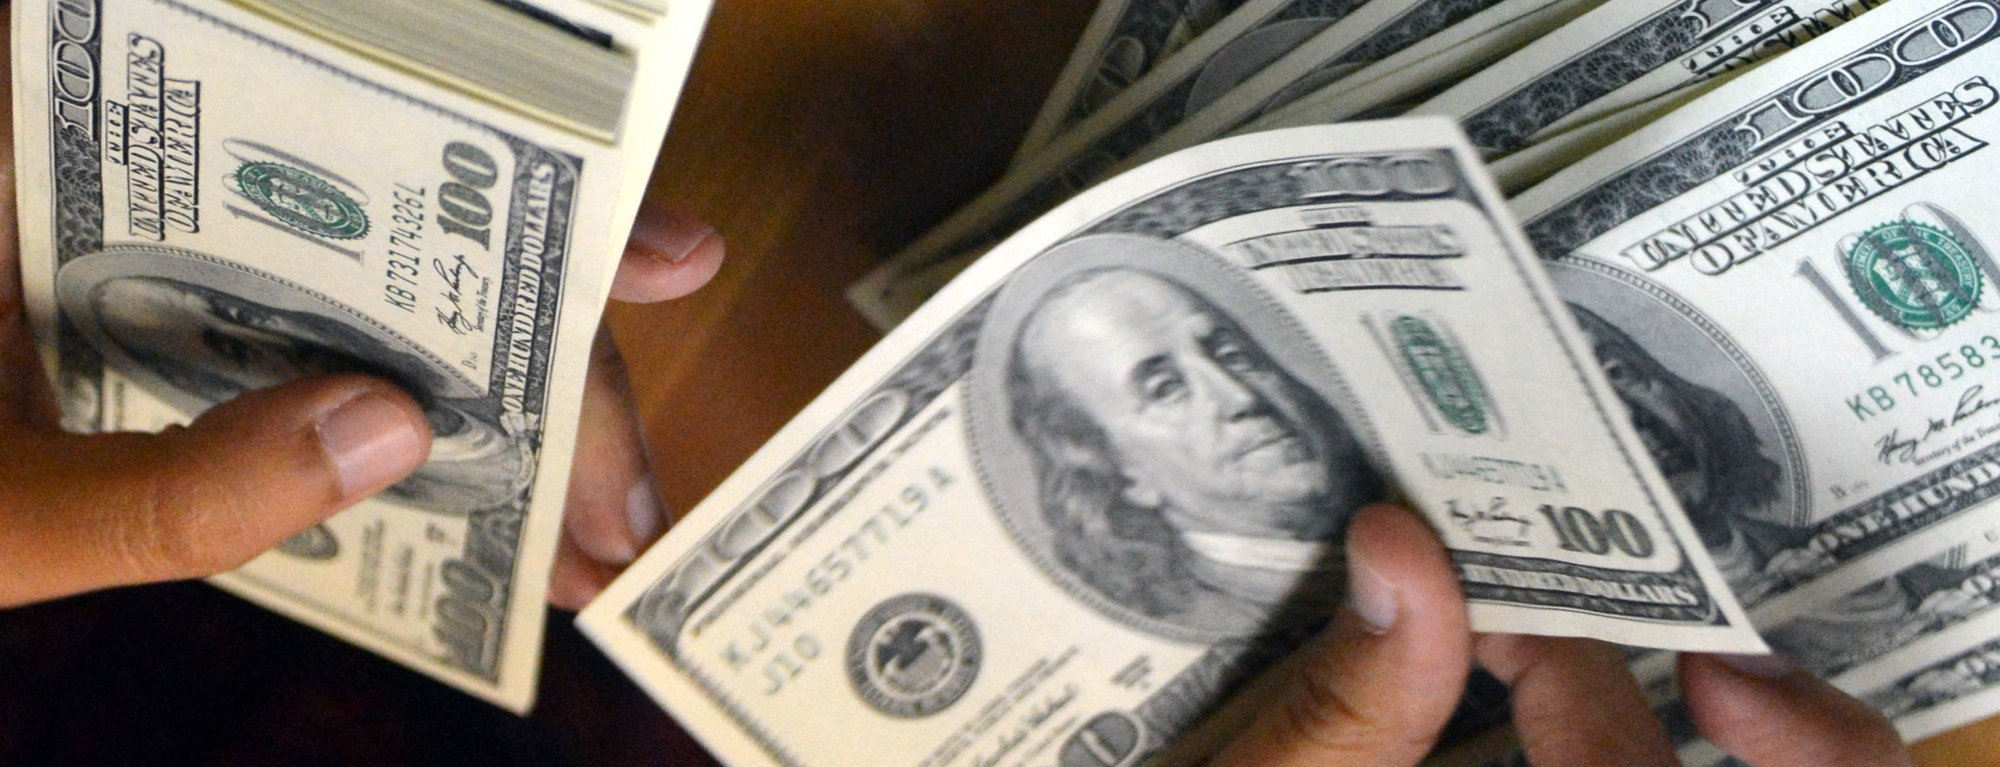 Startup founder salaries: Younger, more inexperienced entrepreneurs pay themselves less